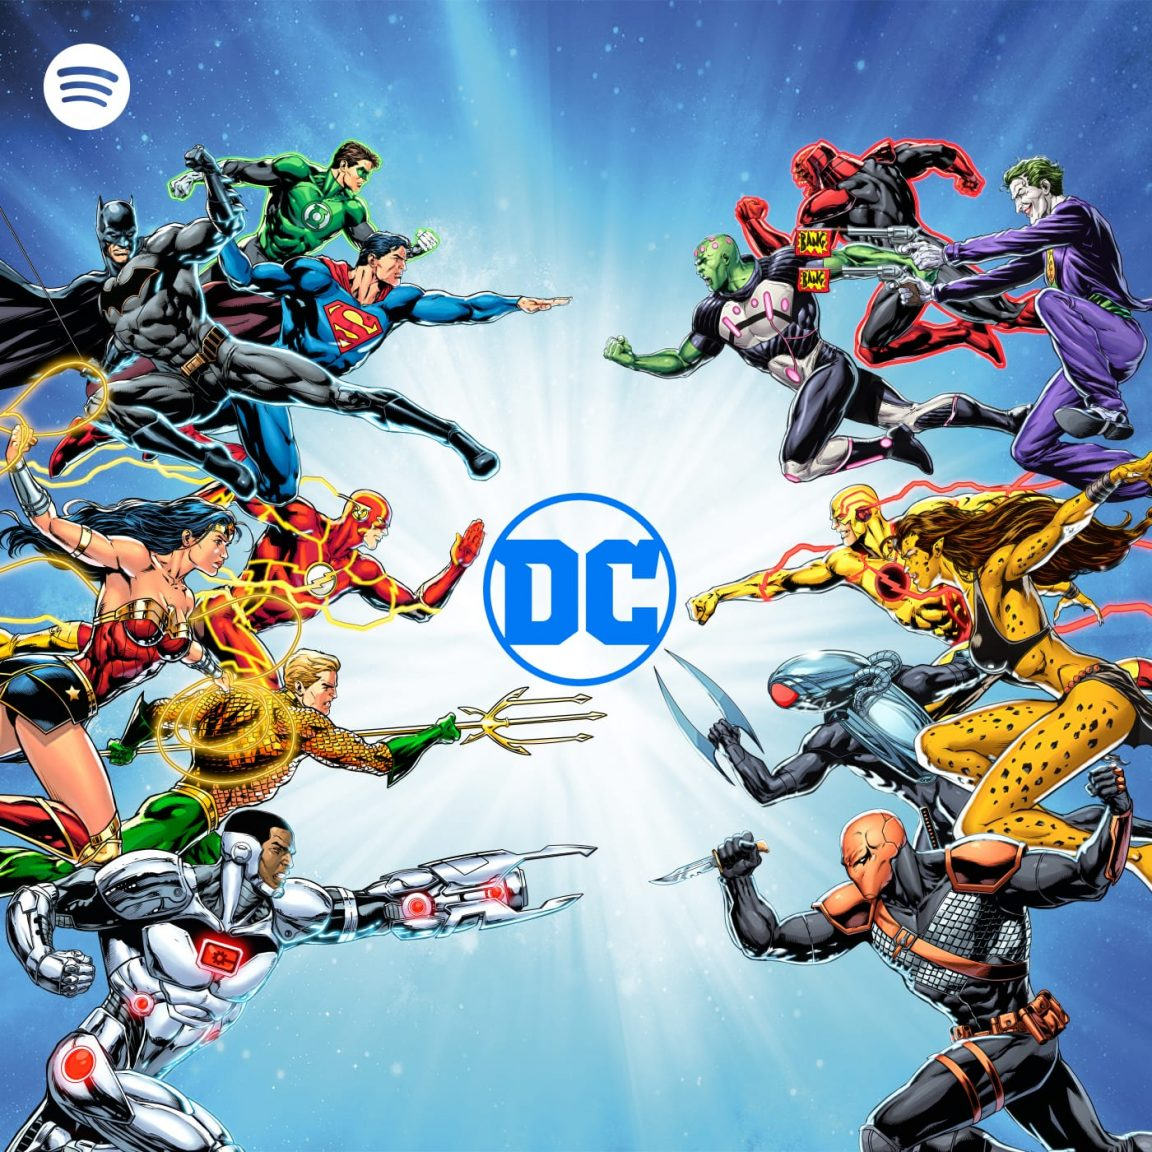 Audio Brings New Dimension to the DC Universe